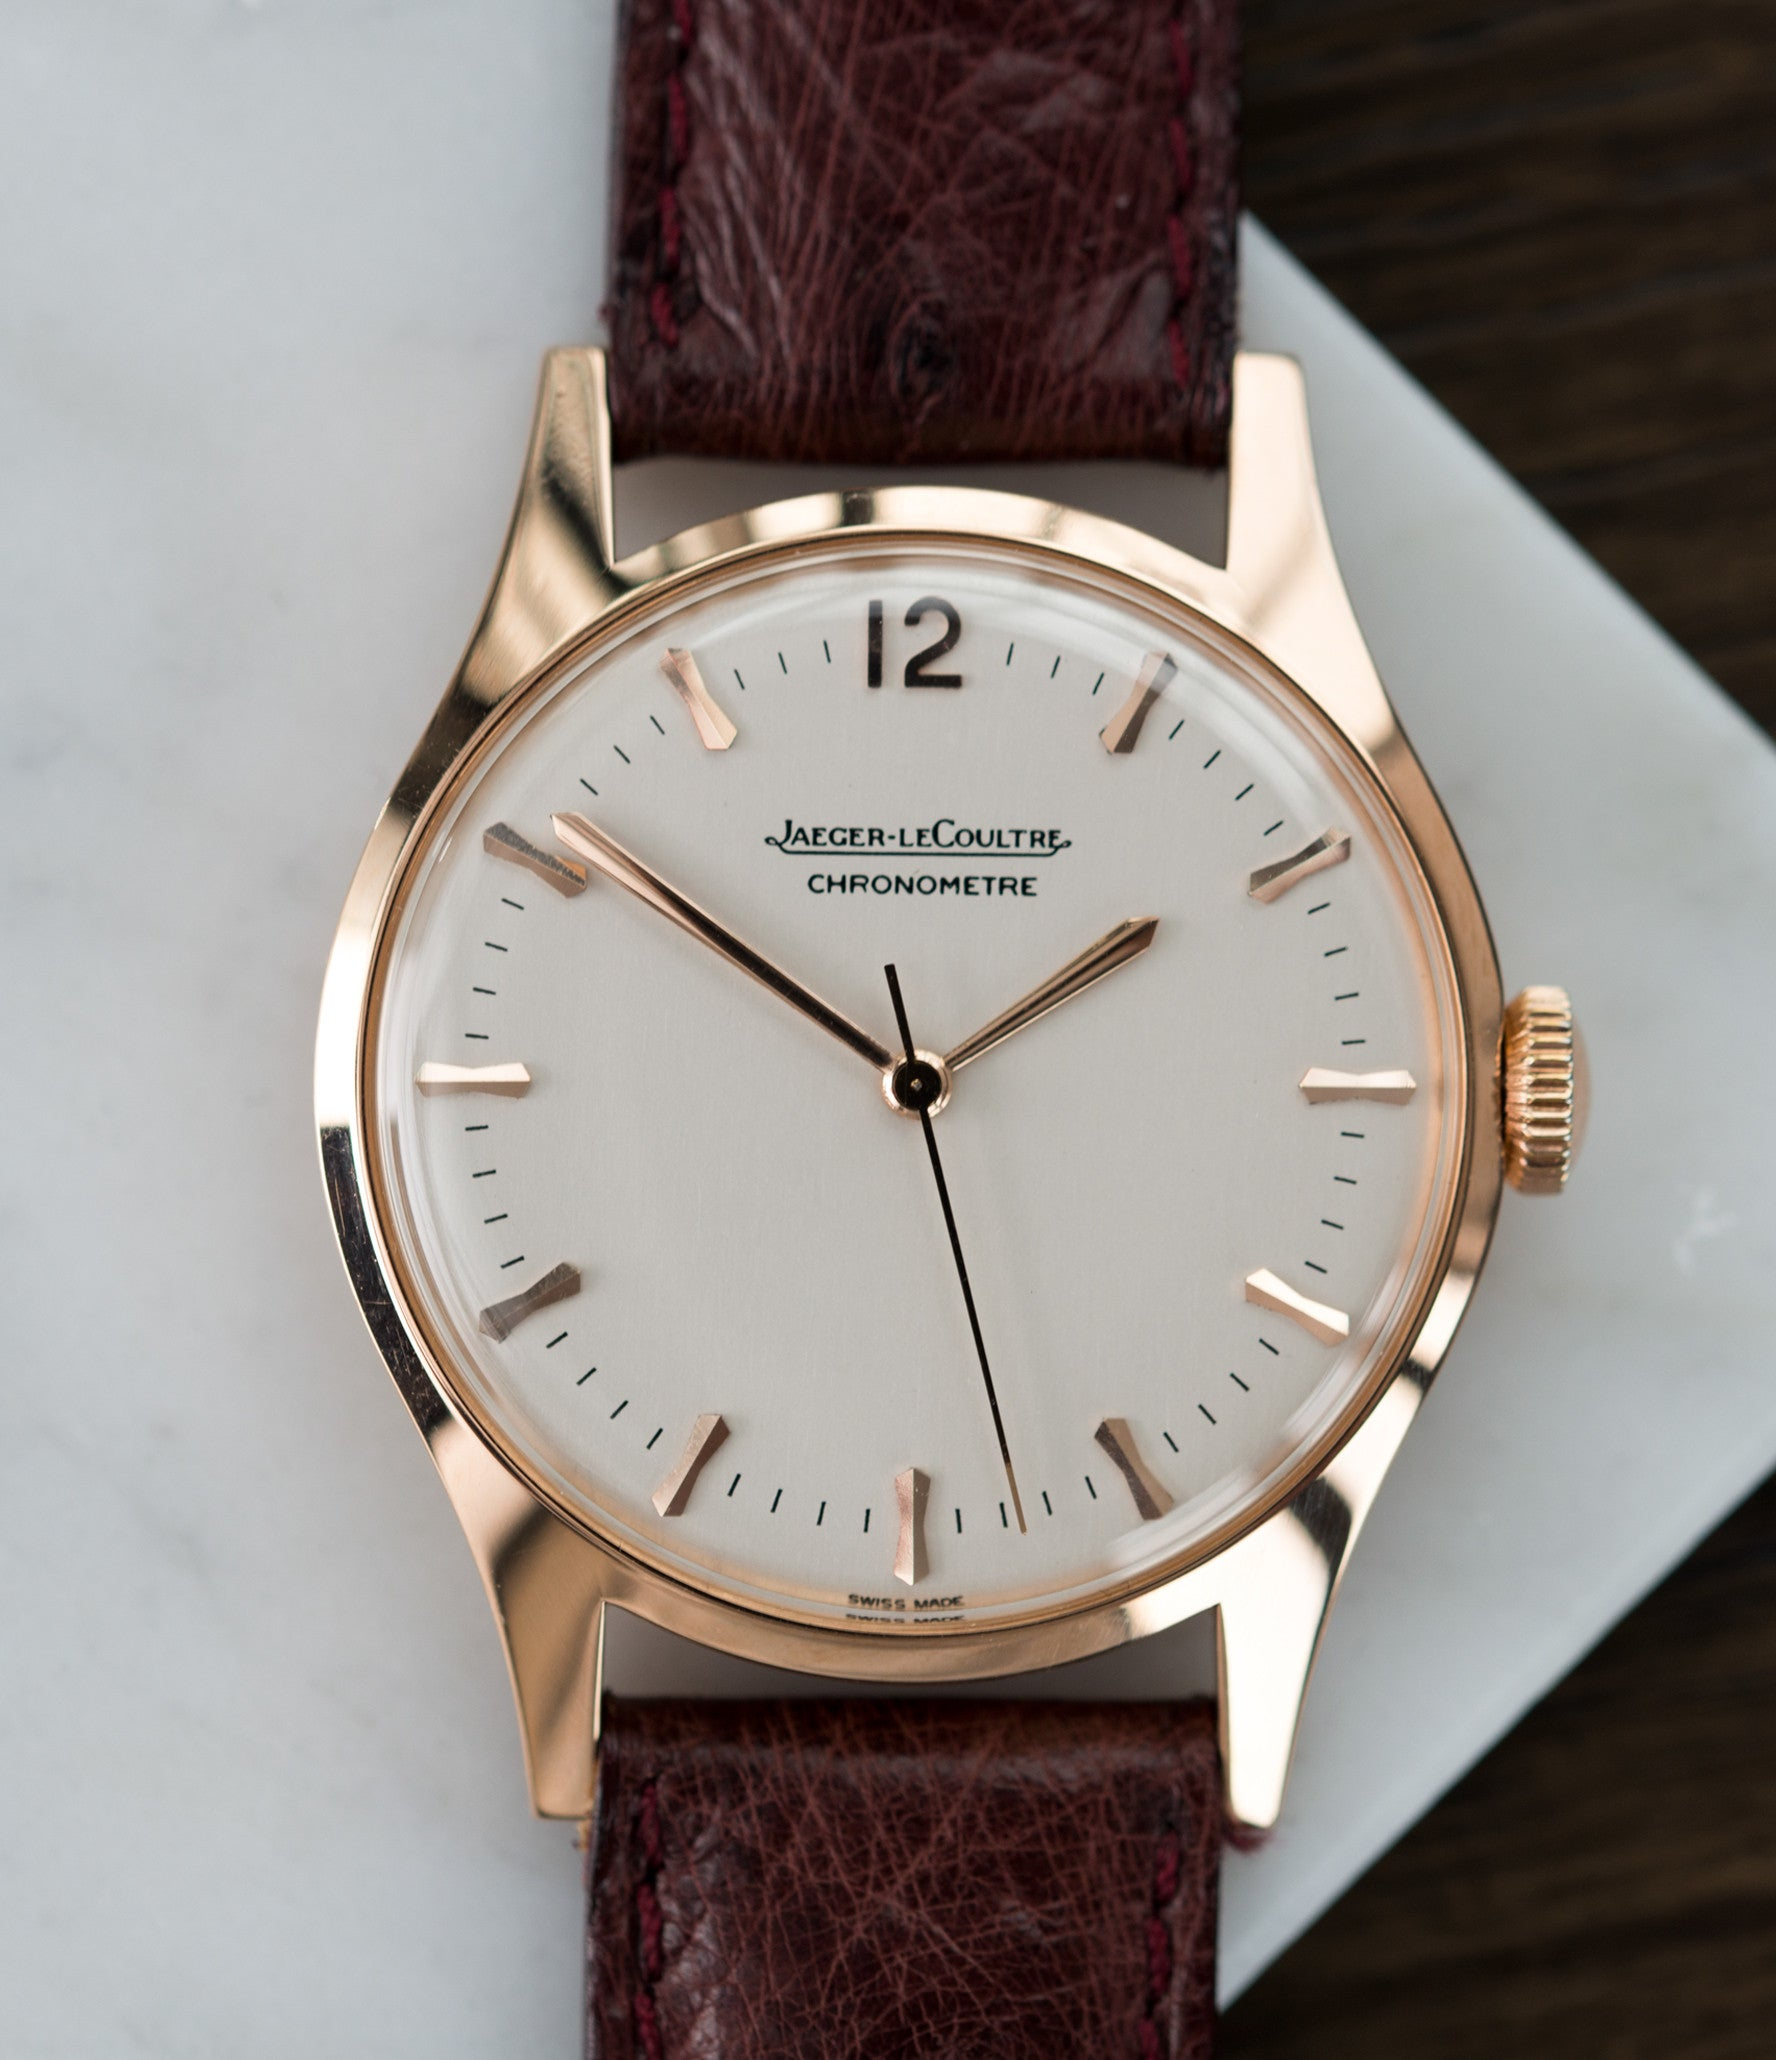 time-only dress watch buy Jaeger-LeCoultre Geophysic Luxe 2985 rose gold rare vintage watch online for sale at A Collected Man London